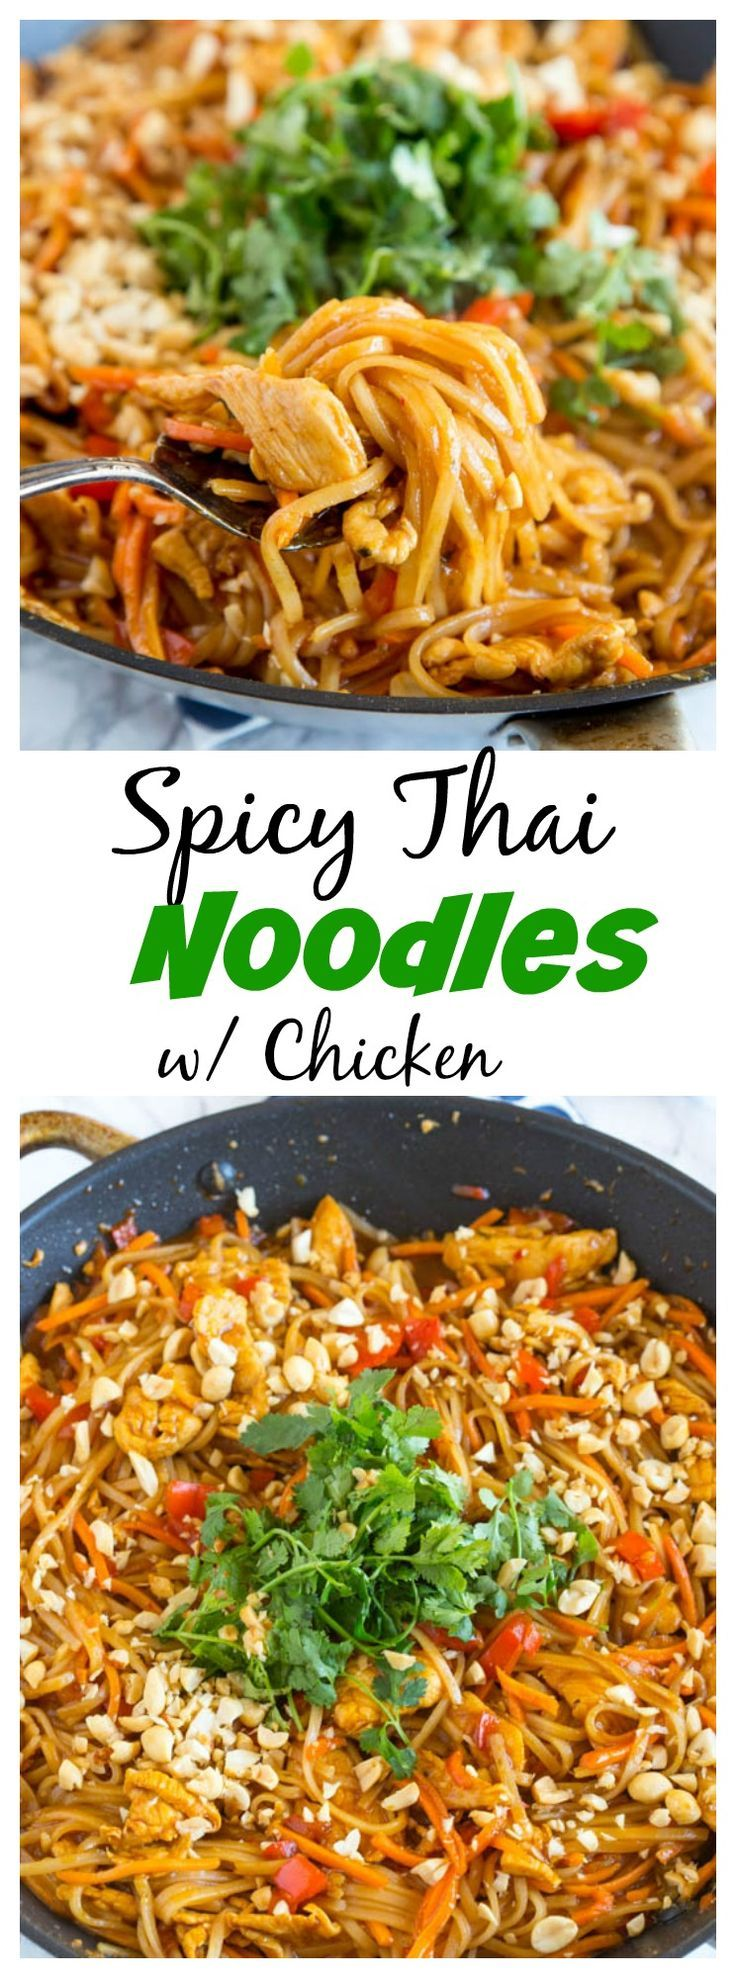 Spicy Thai Noodles with Chicken – a super quick and easy dinner that is on the table in minutes. Full of great Thai flavor with easy to find ingredients! #quickeasydinners